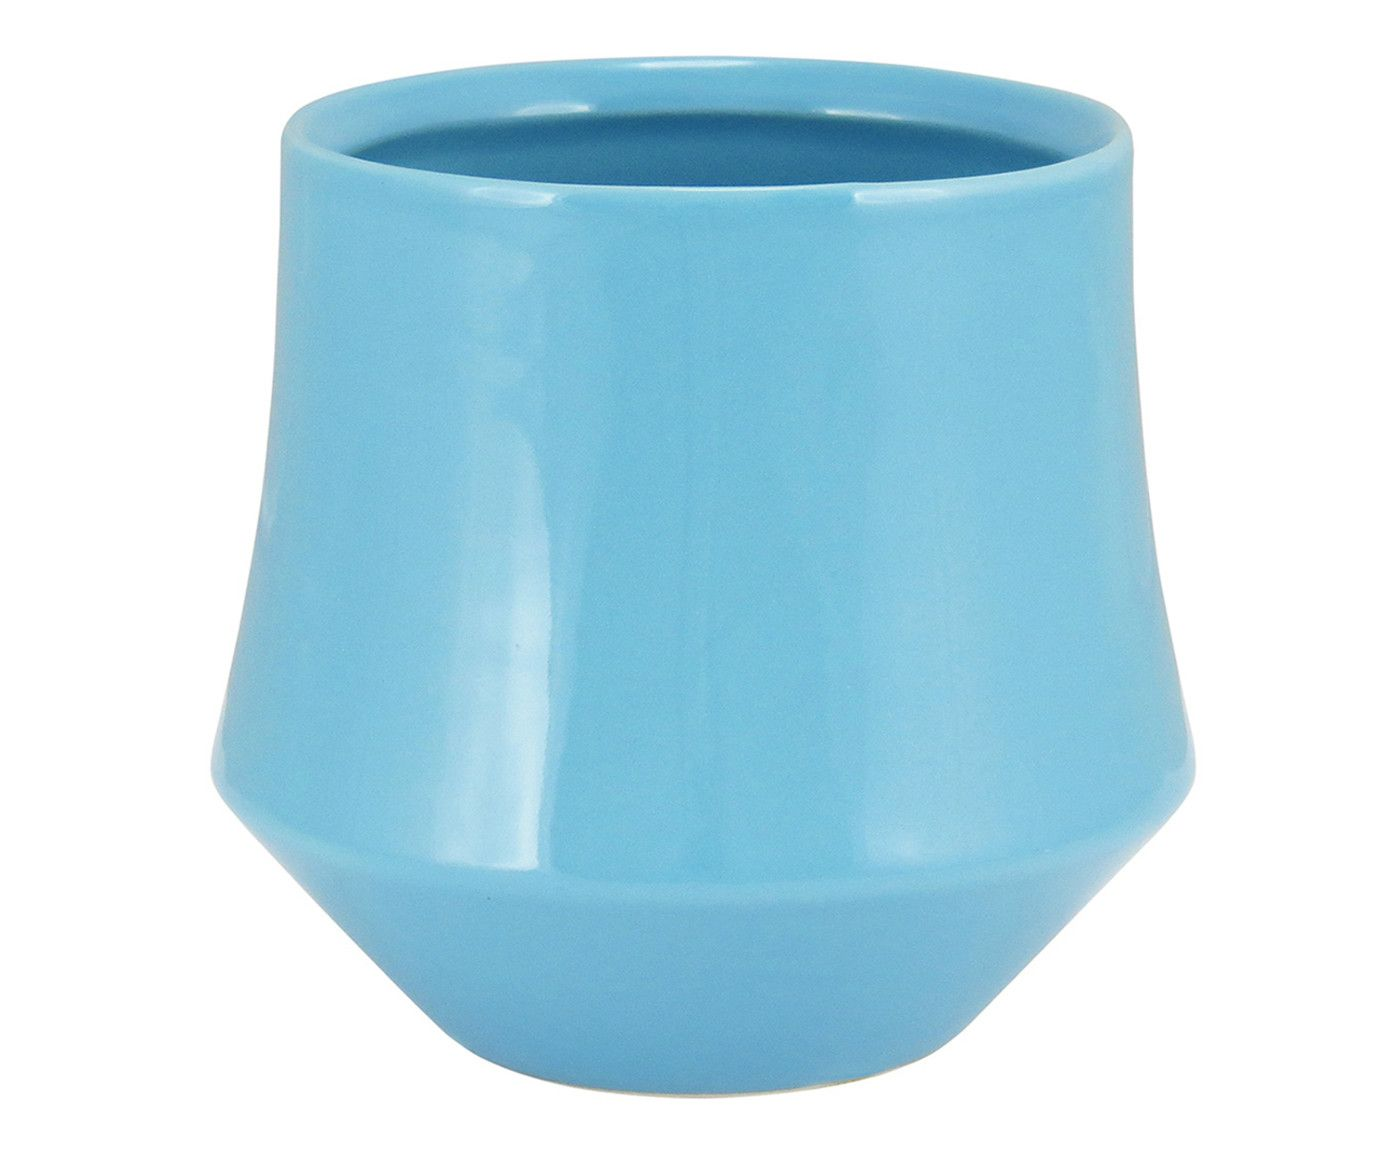 Vaso Hover - 13,8X12,5cm | Westwing.com.br